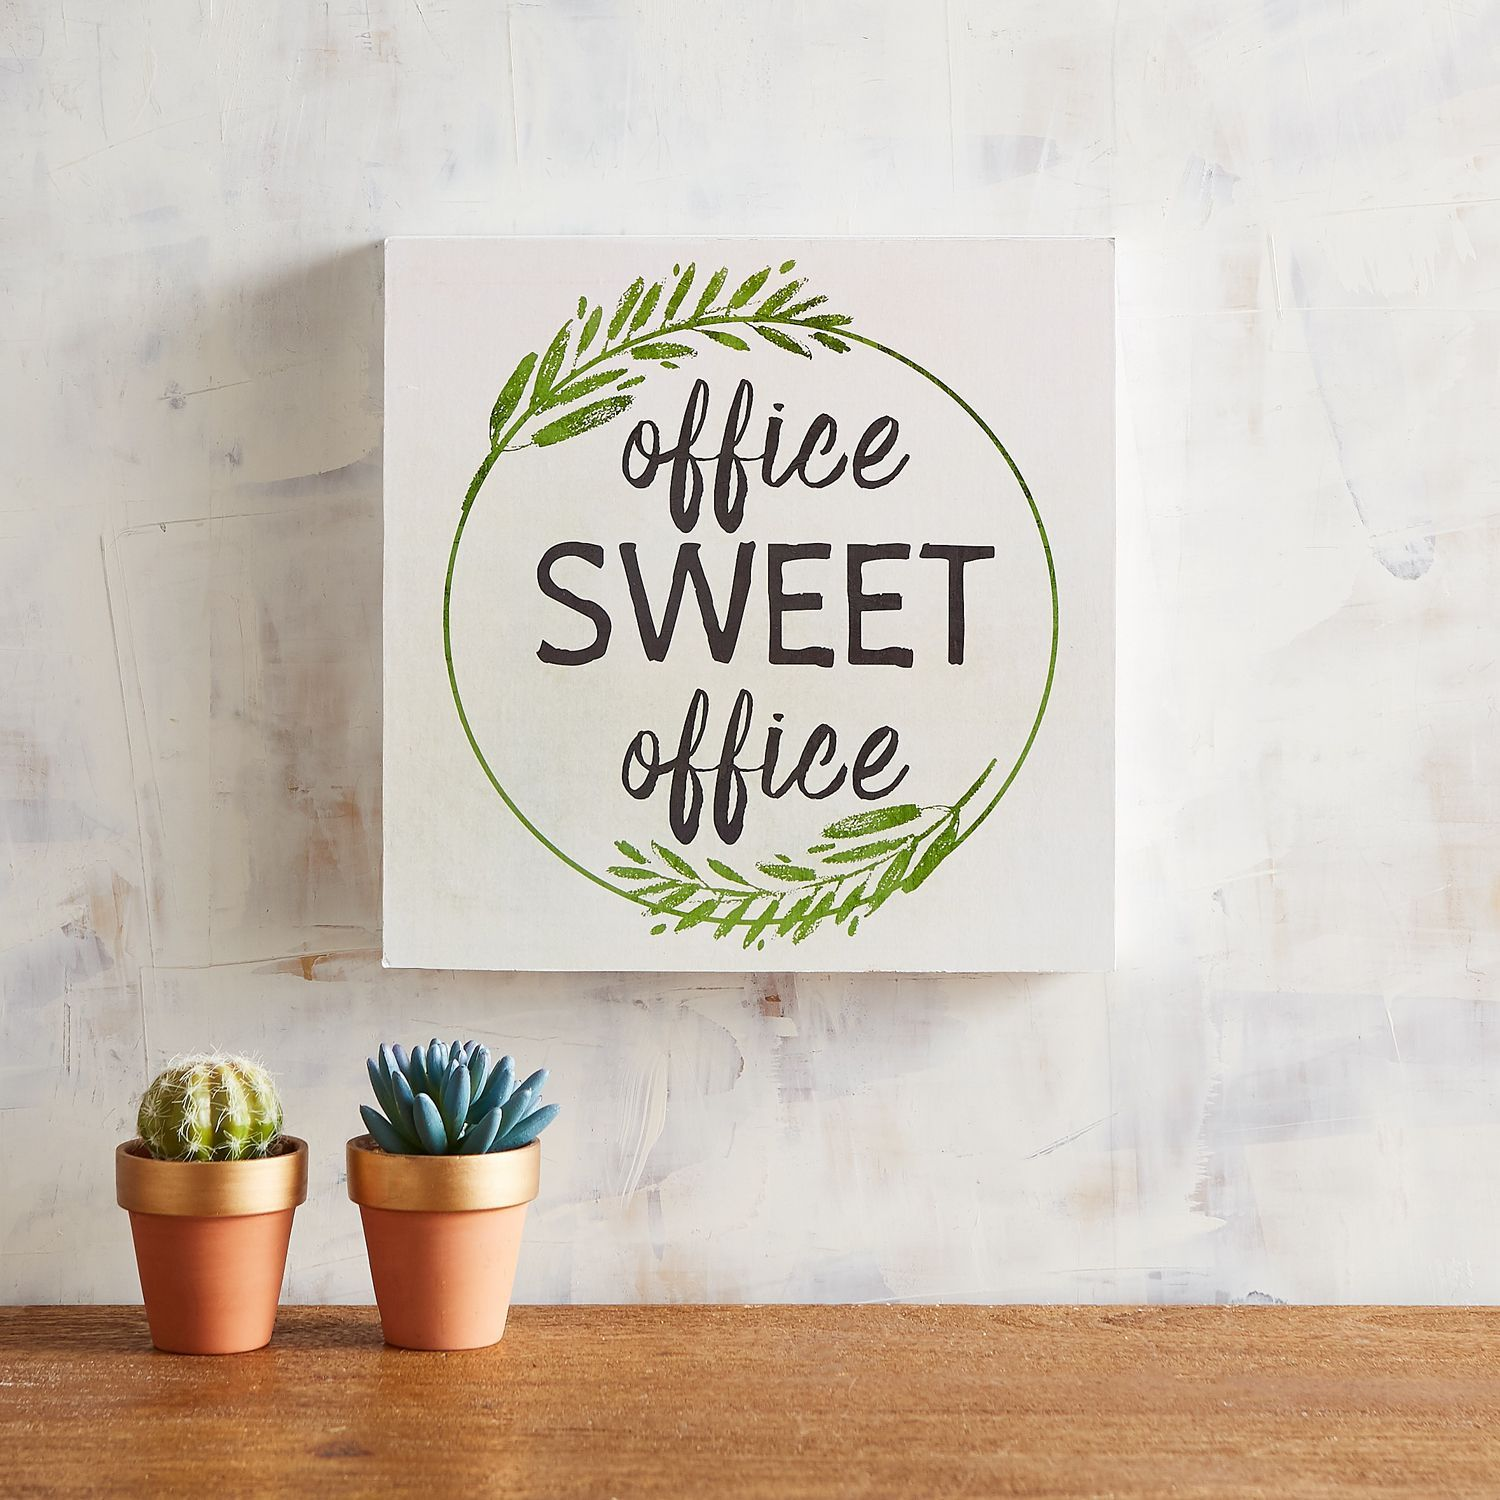 Home Decor Home Based Business: Office Sweet Office Small Art